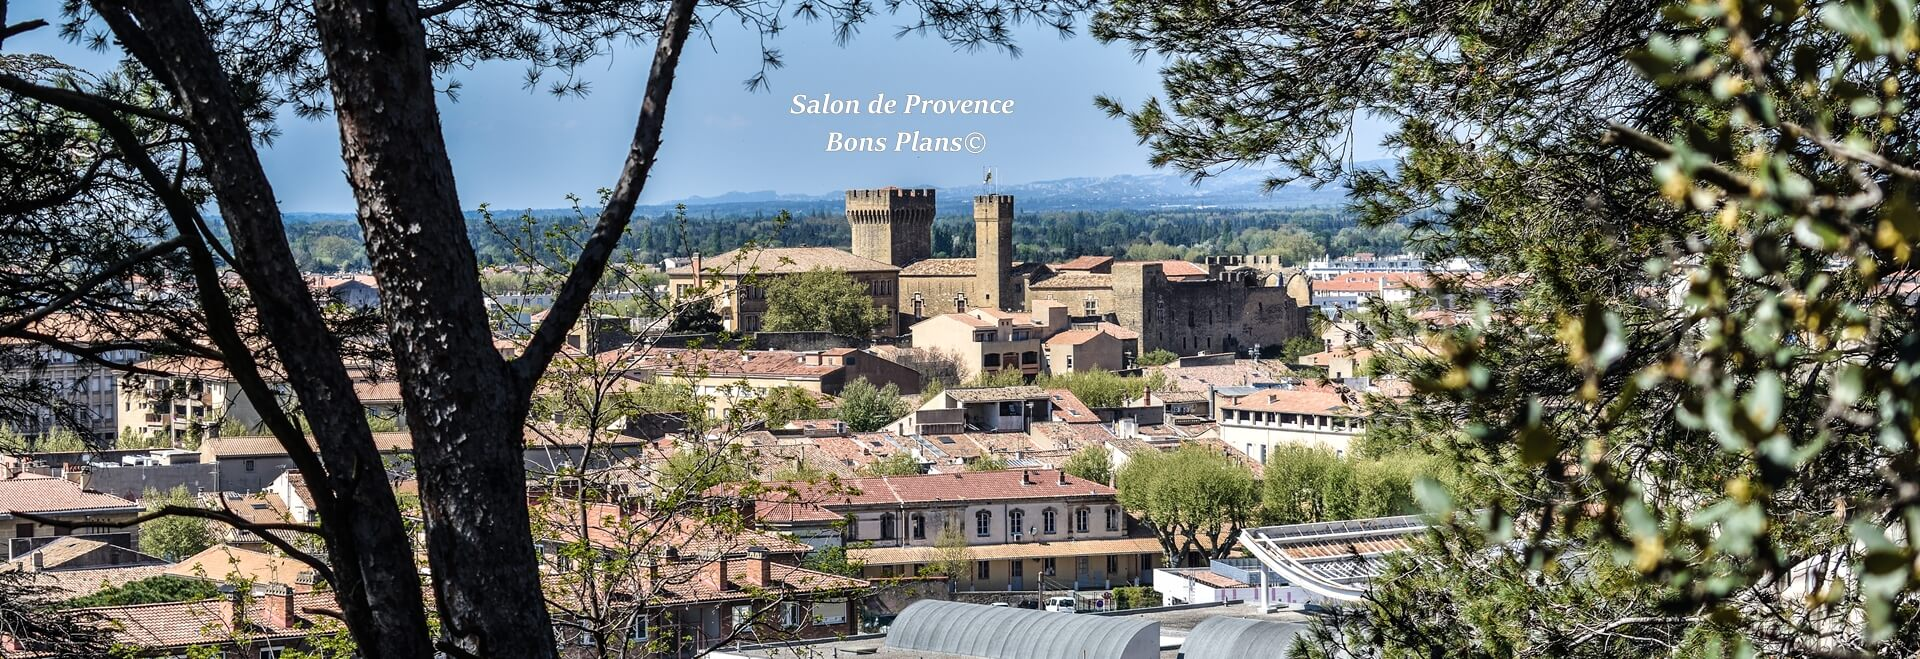 Salon de provence bons plans for Cci salon de provence